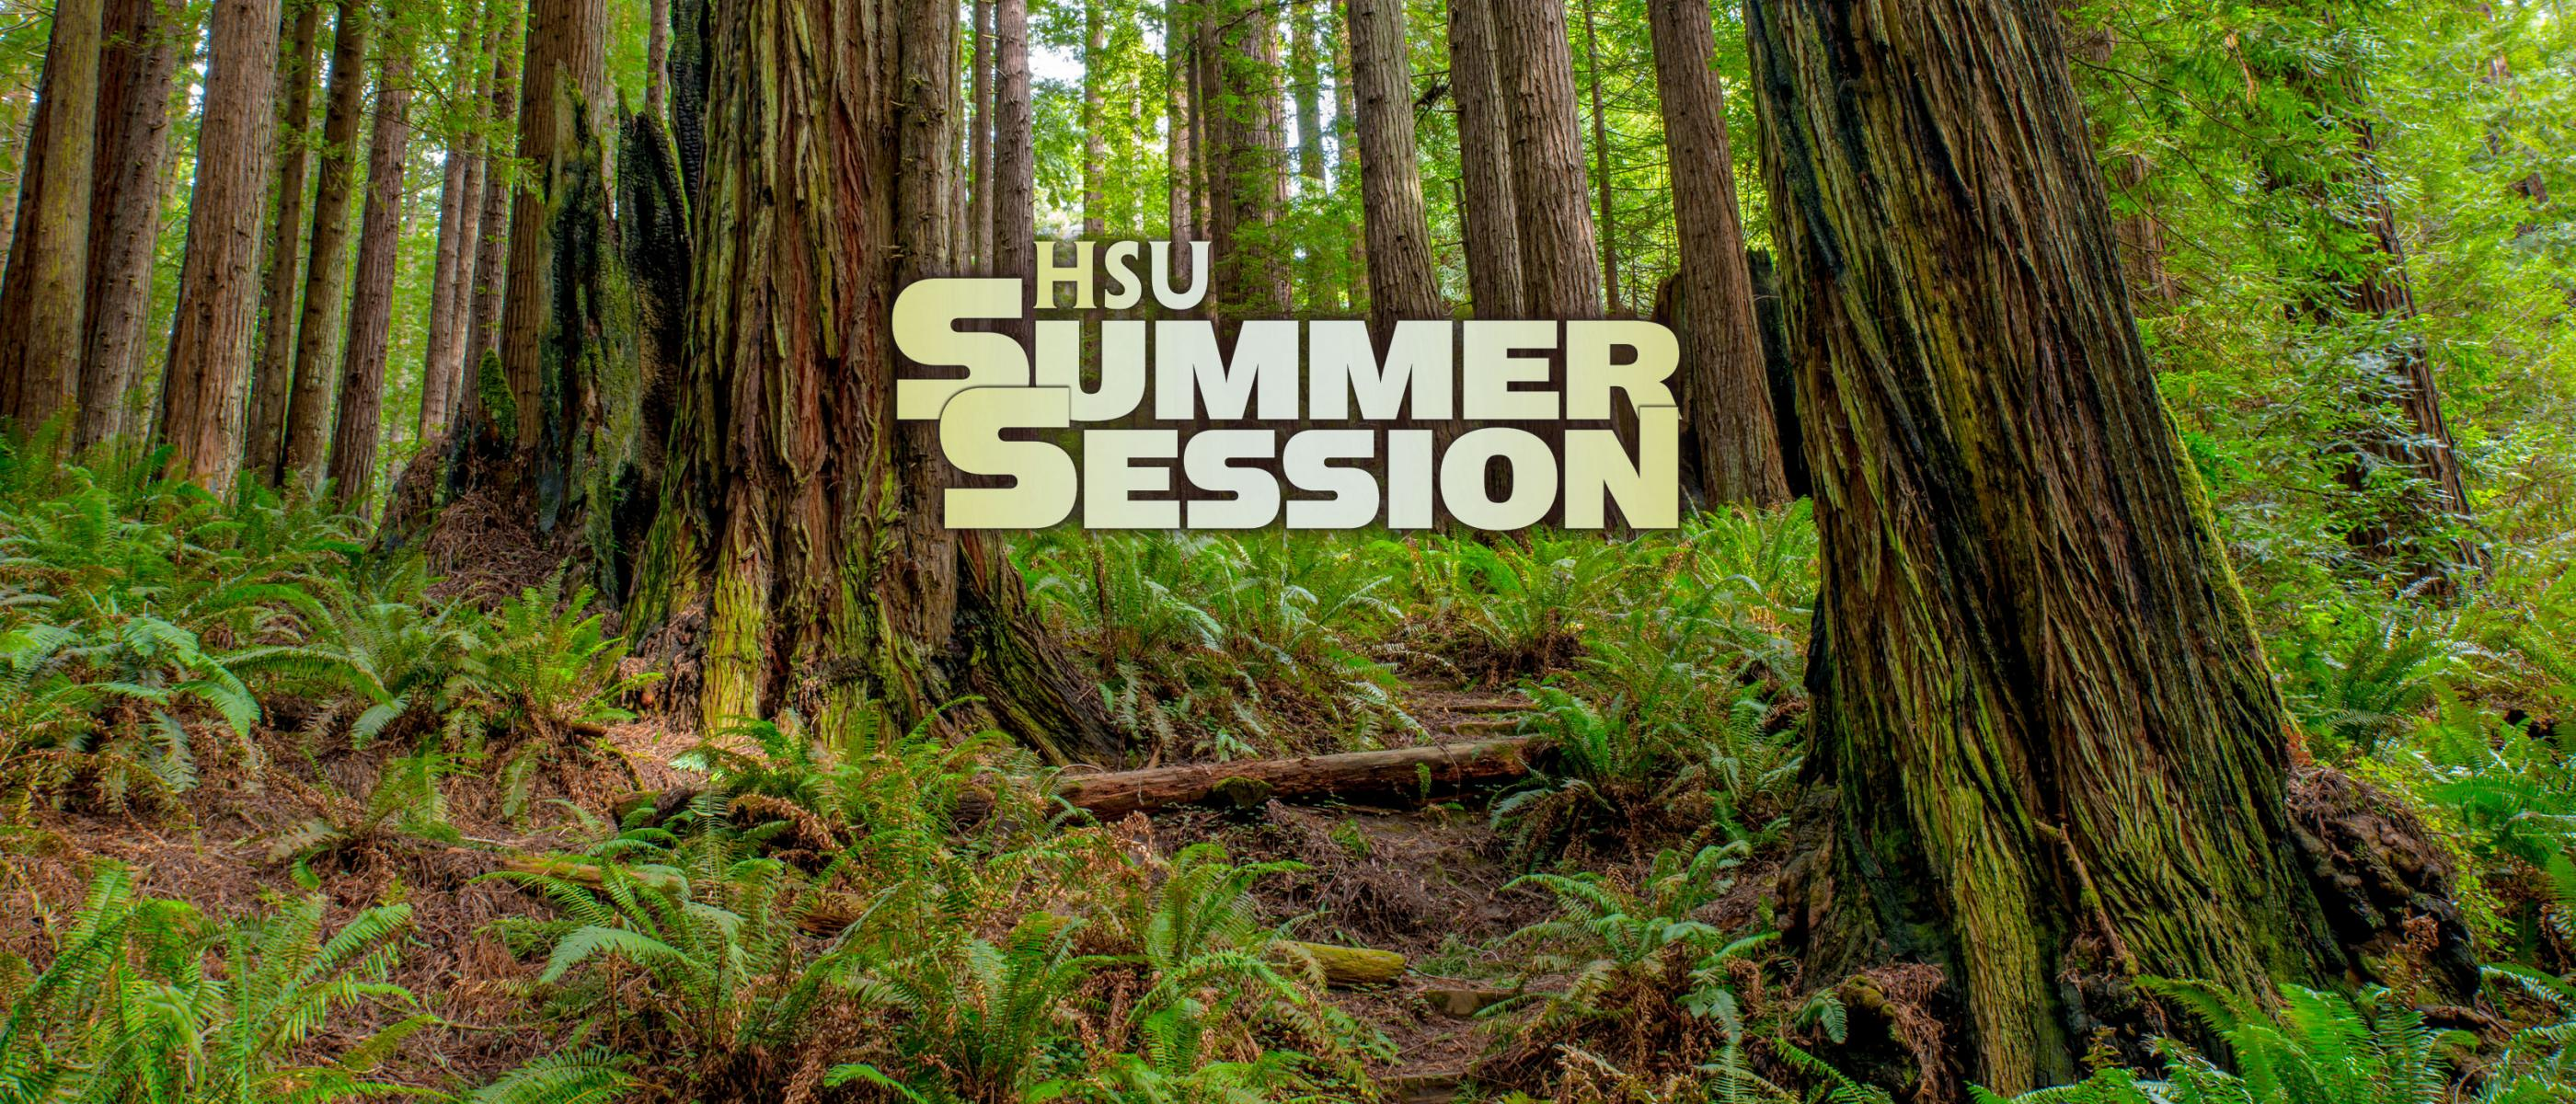 HSU Summer Session